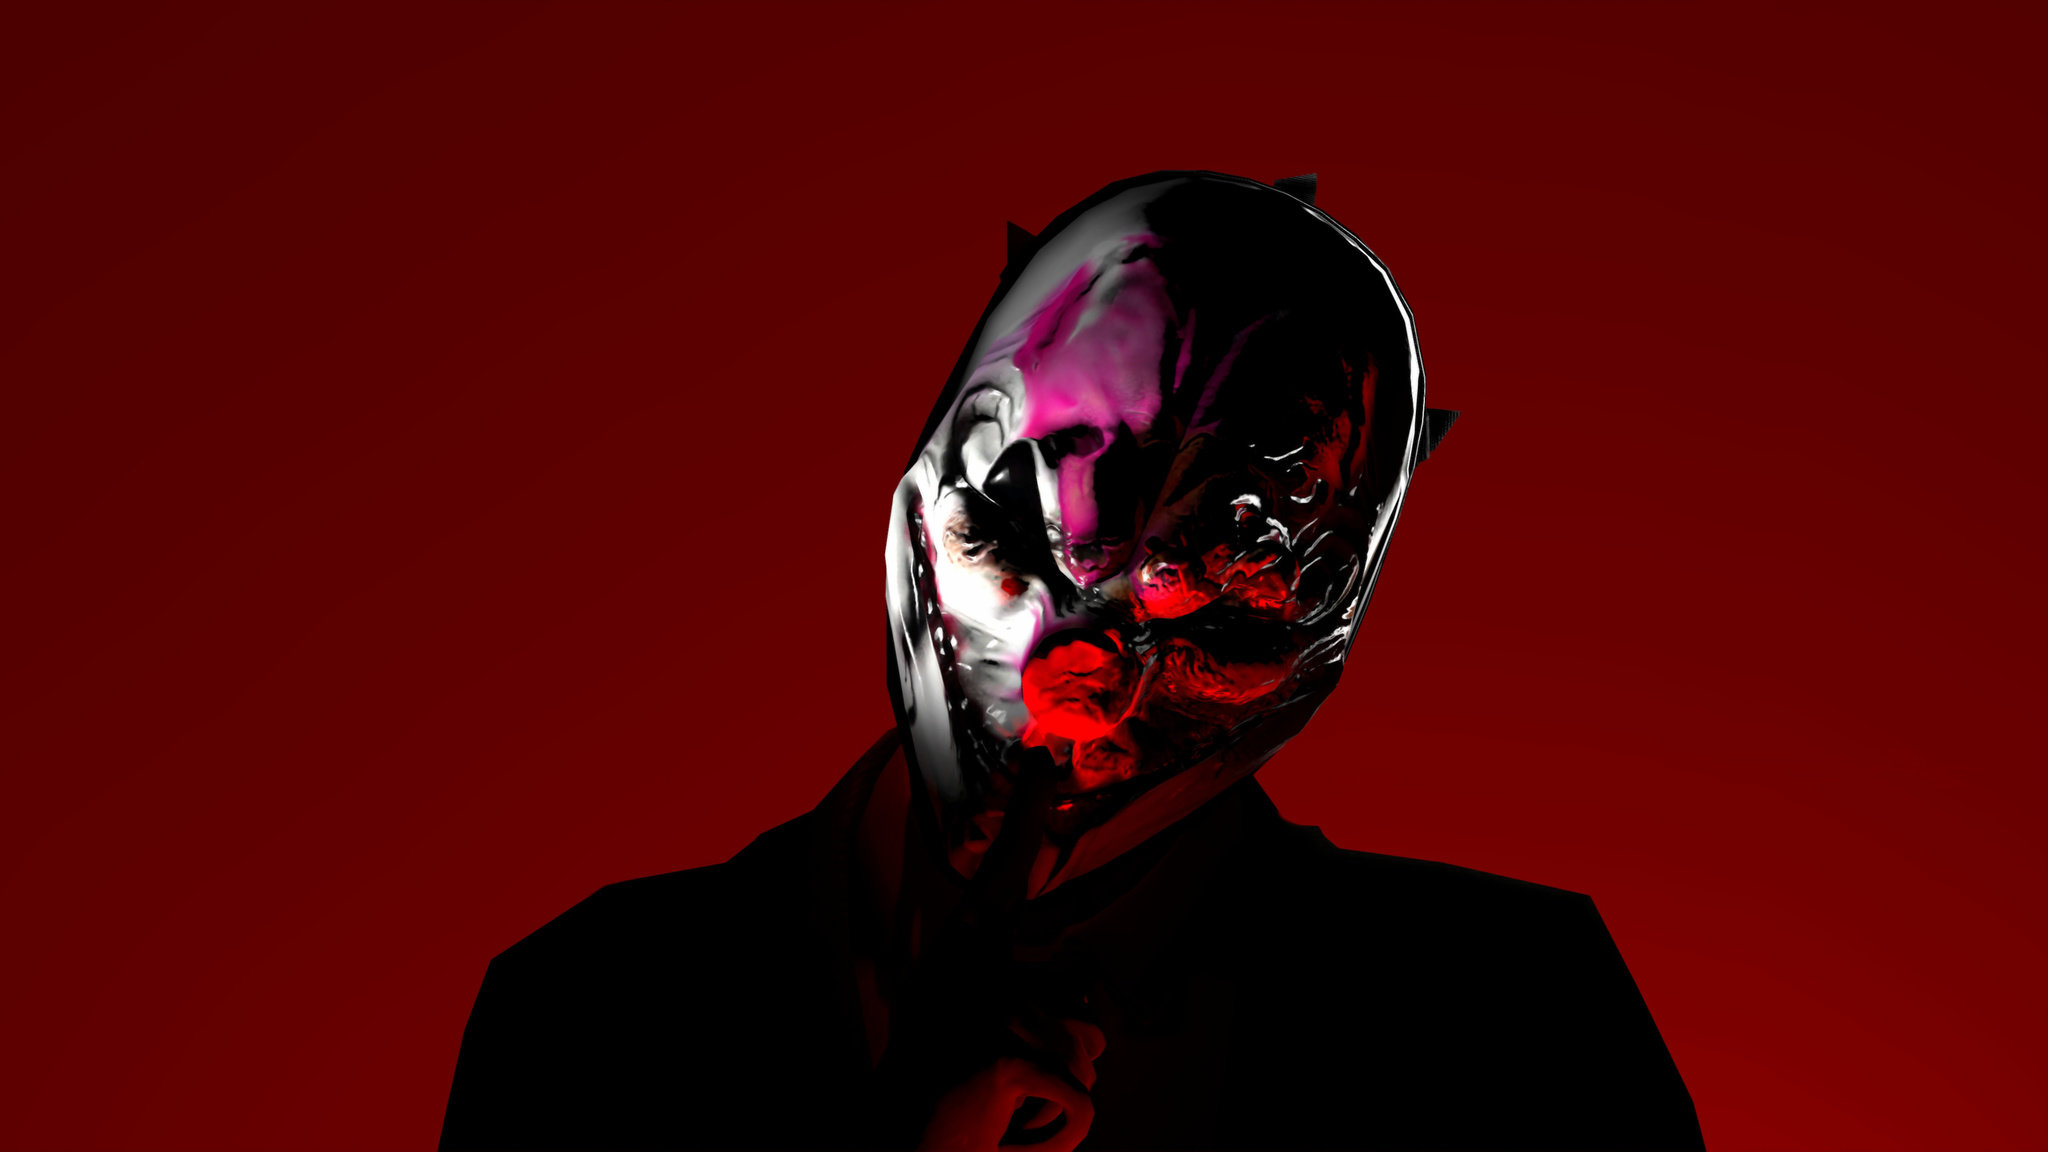 High Resolution Payday 2 Hd 2048x1152 Wallpaper Id340644 For Pc